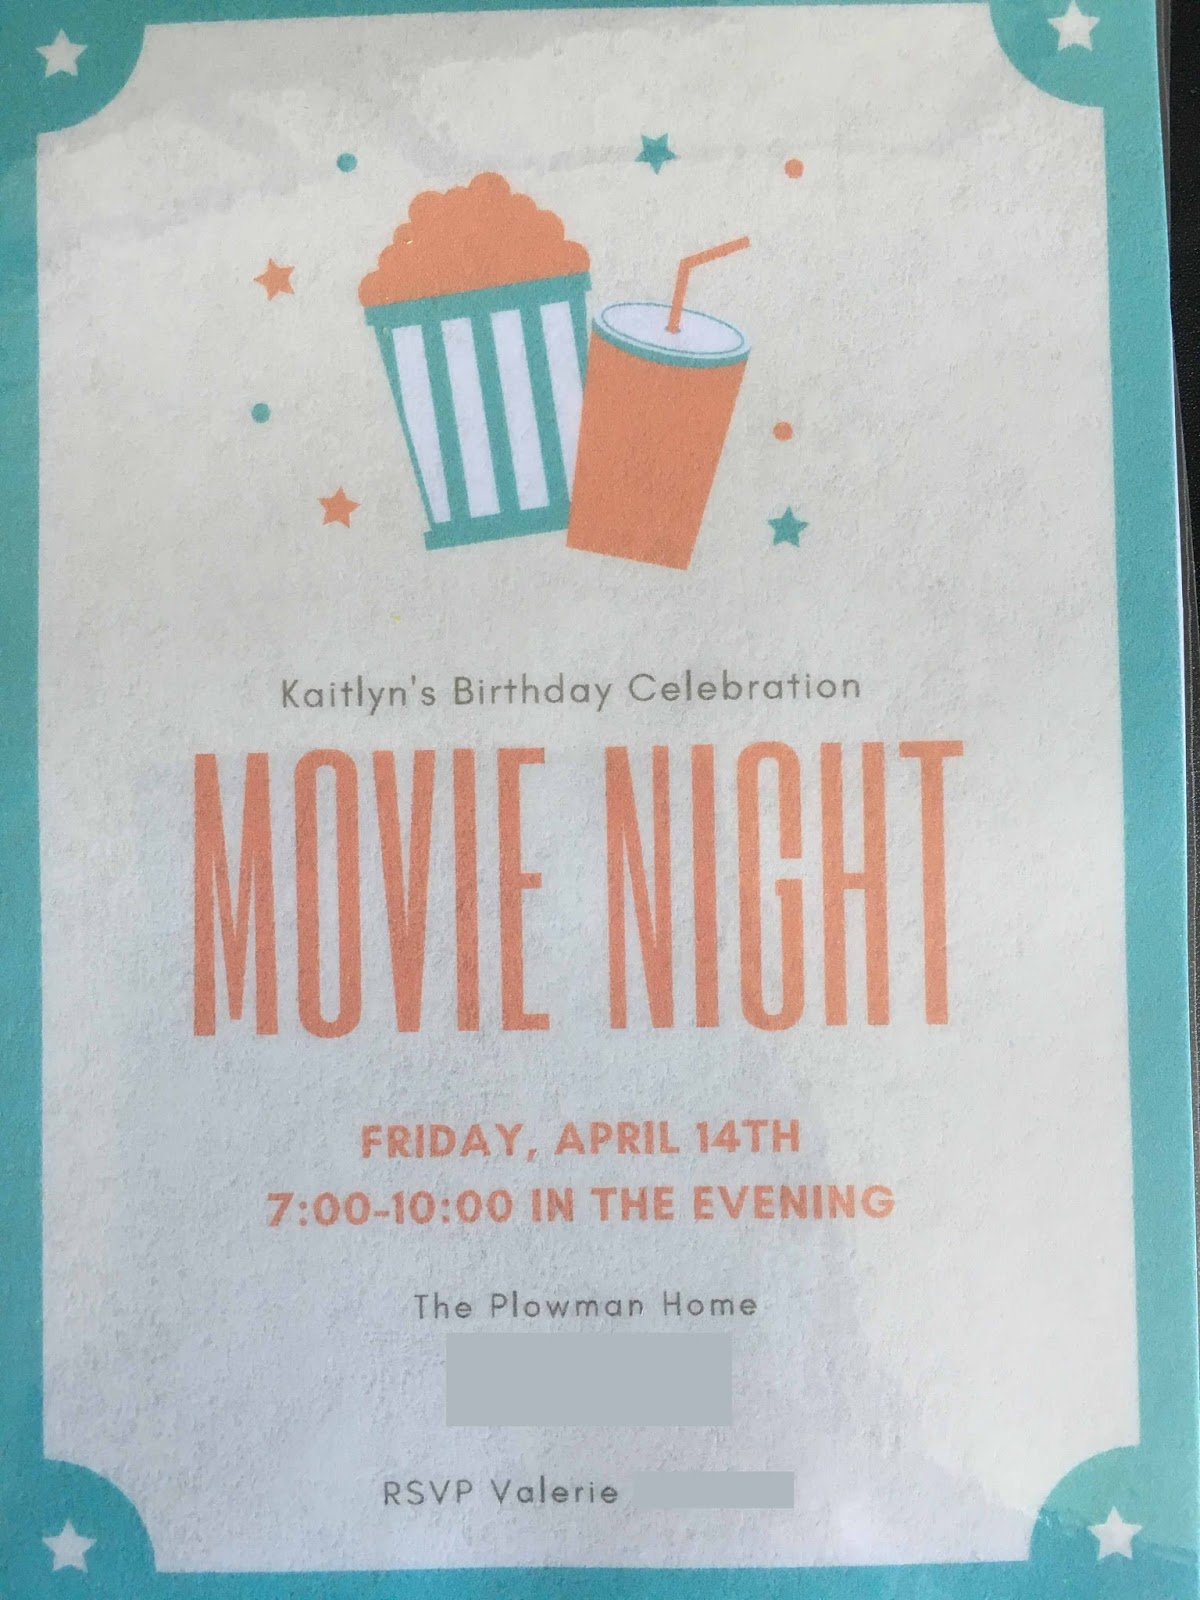 Movie night birthday party invitation idea